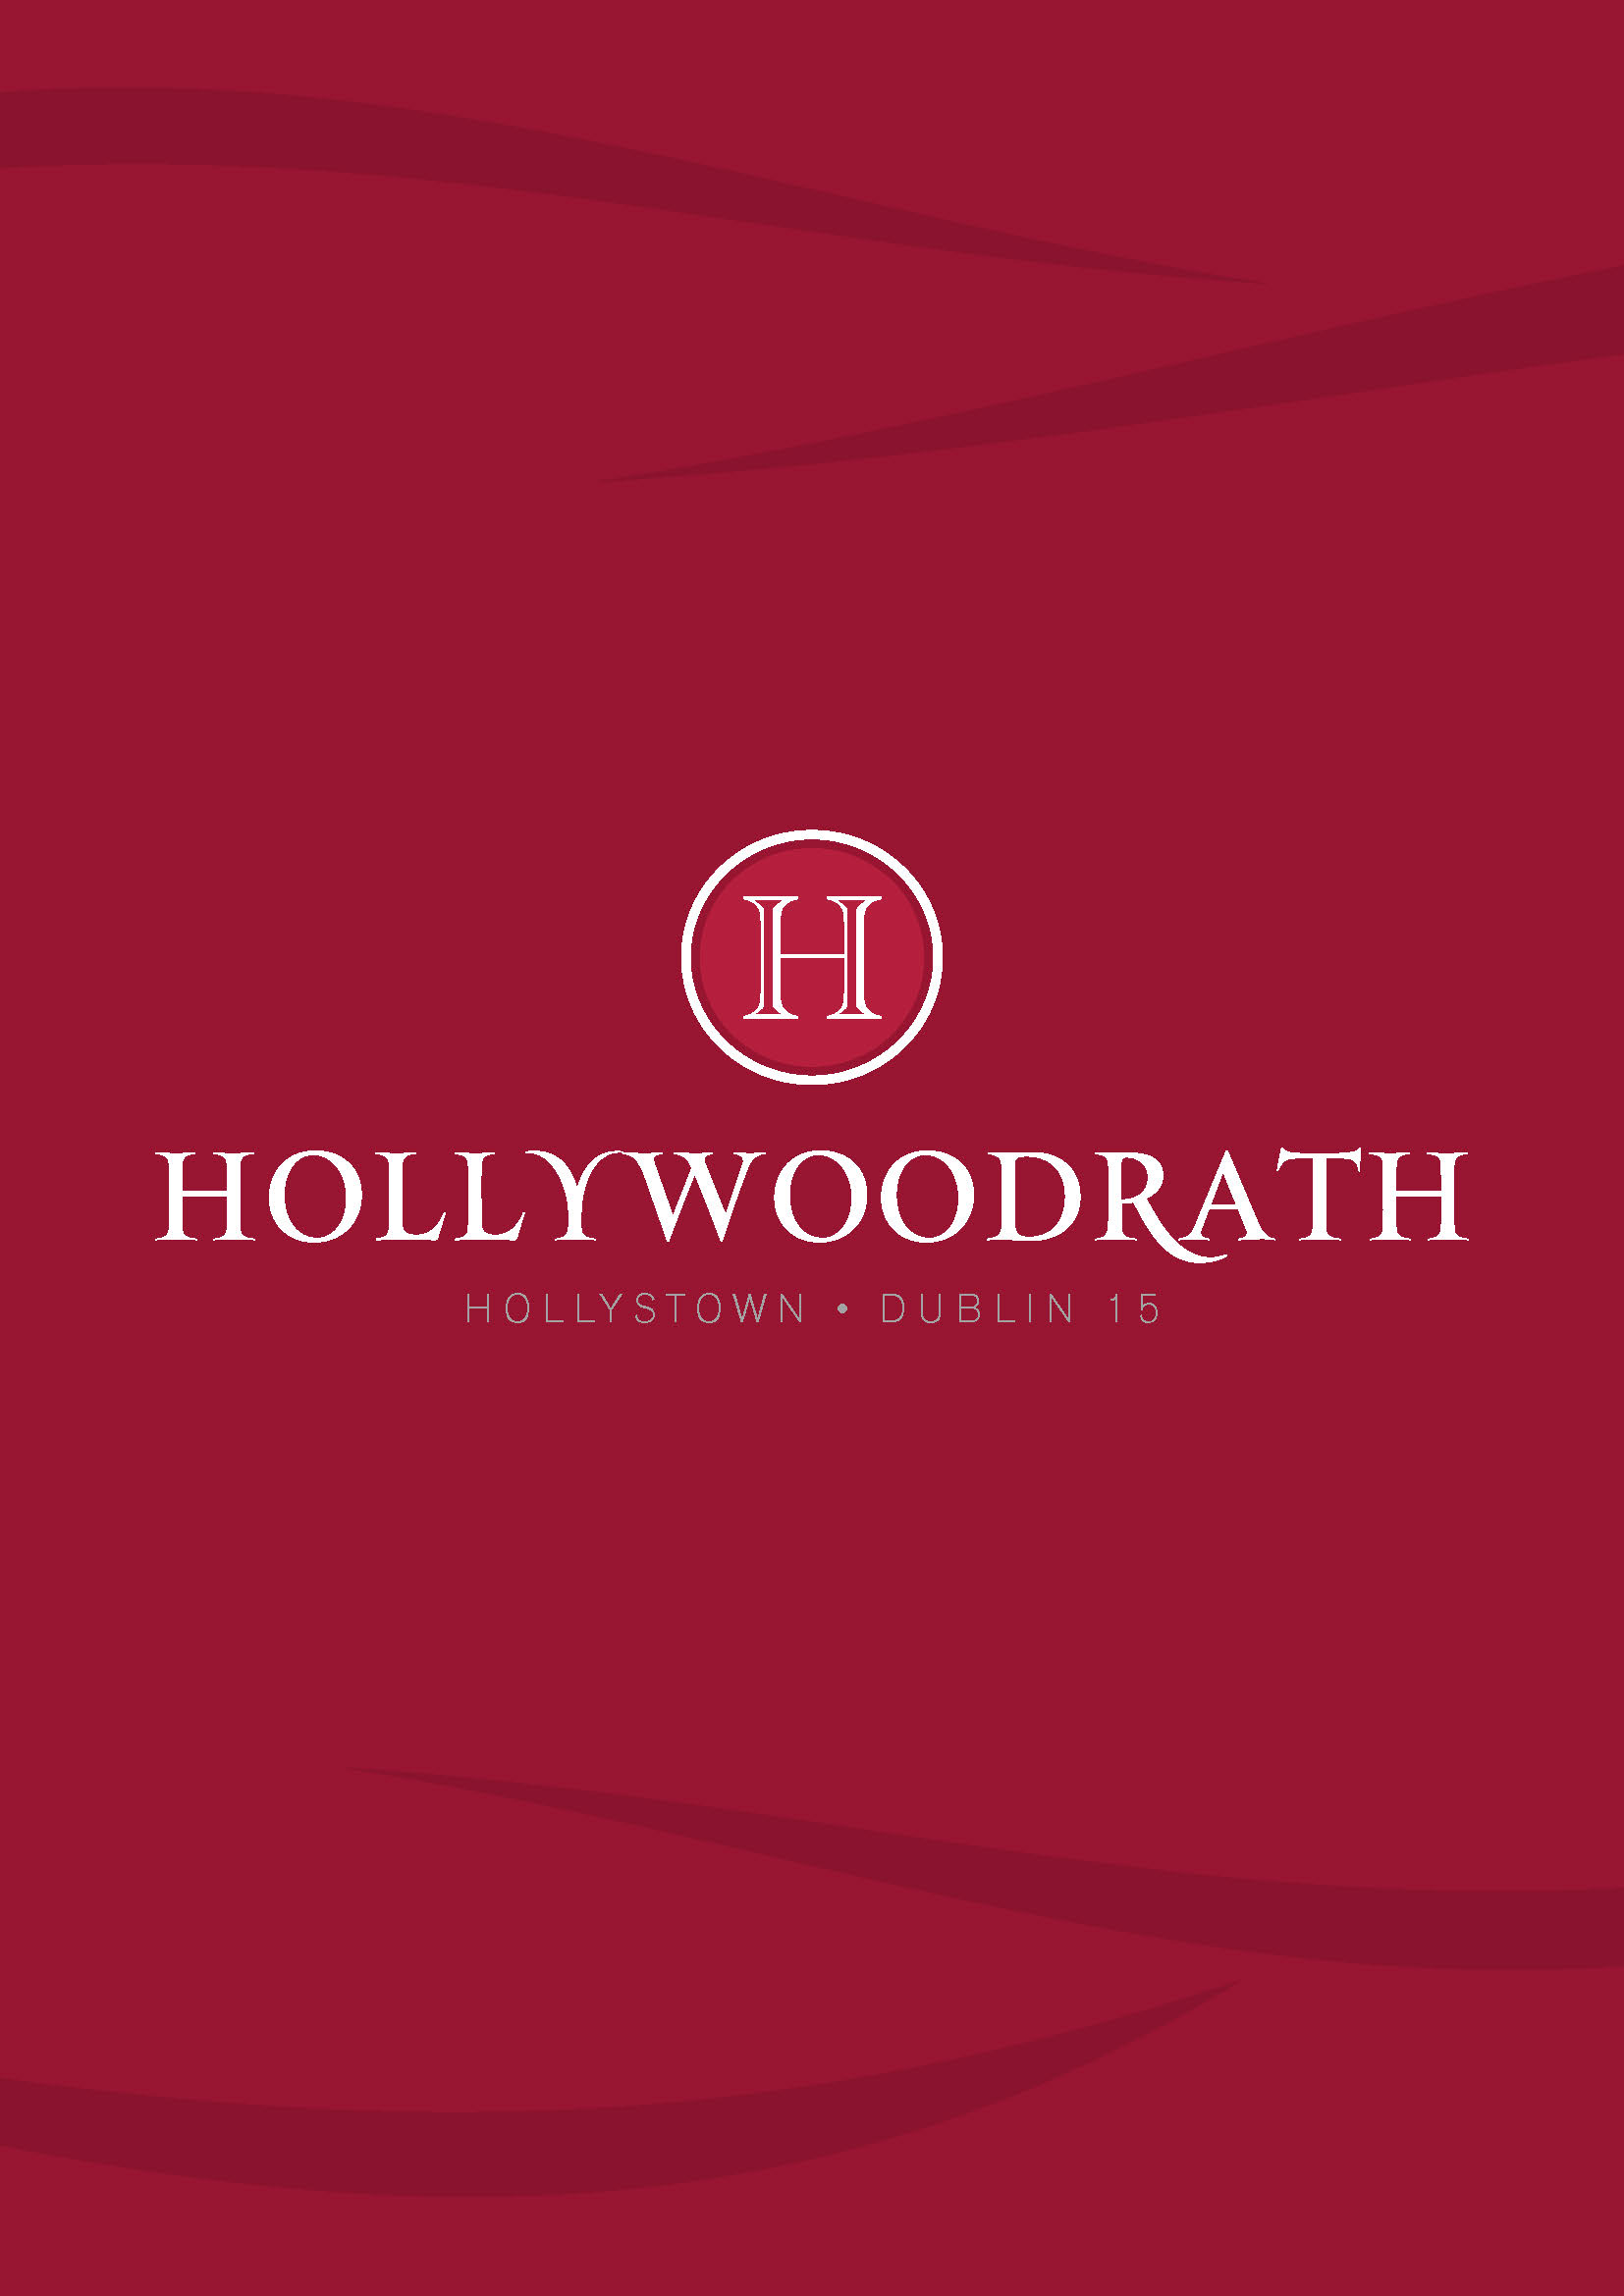 Pages from Hollywoodrath Brochure July 2020-2